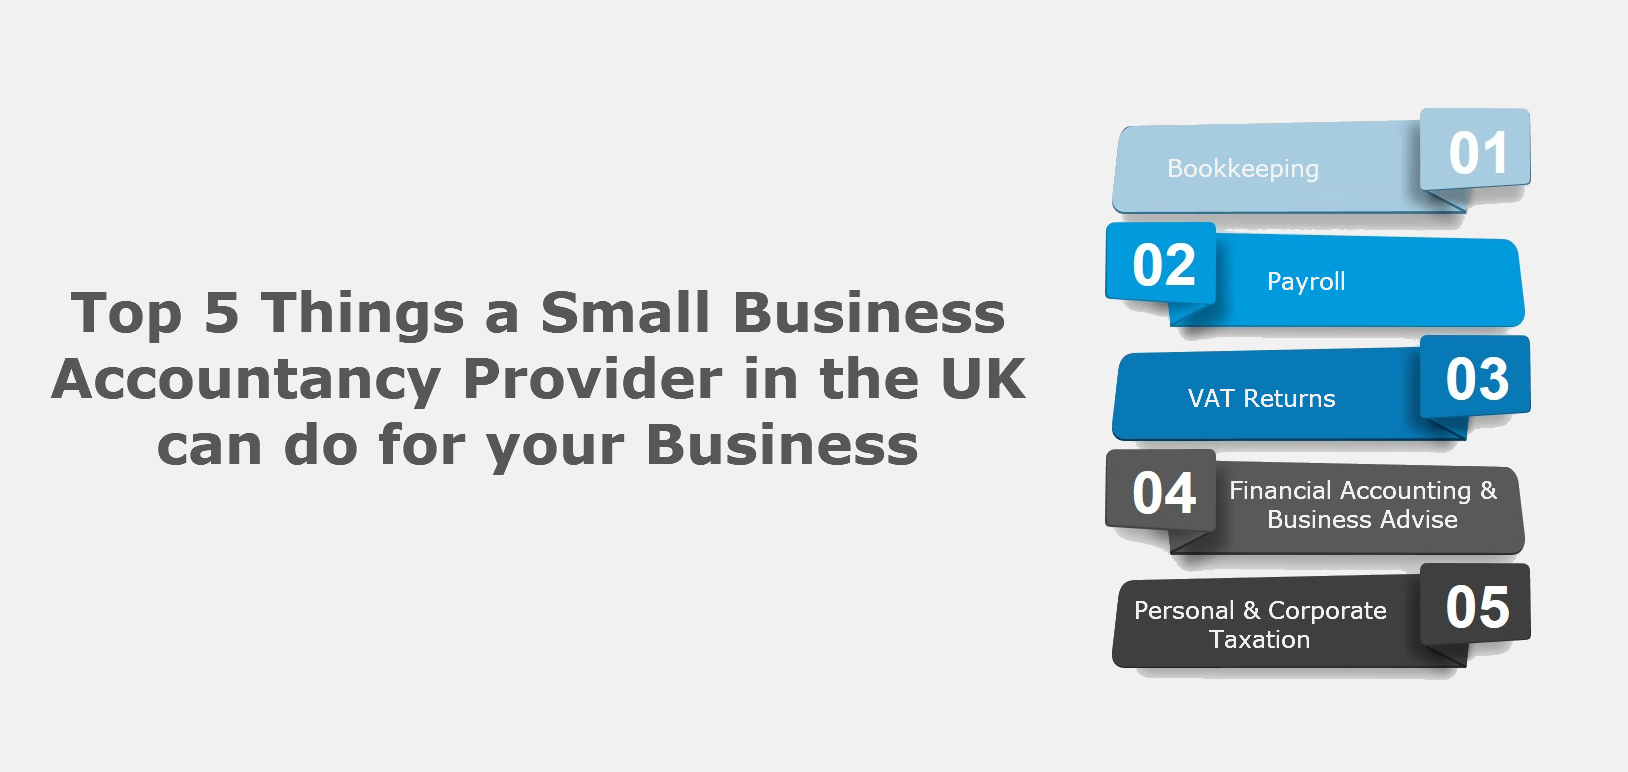 Top 5 Things a Small Business Accountancy Provider in the UK can do for your Business